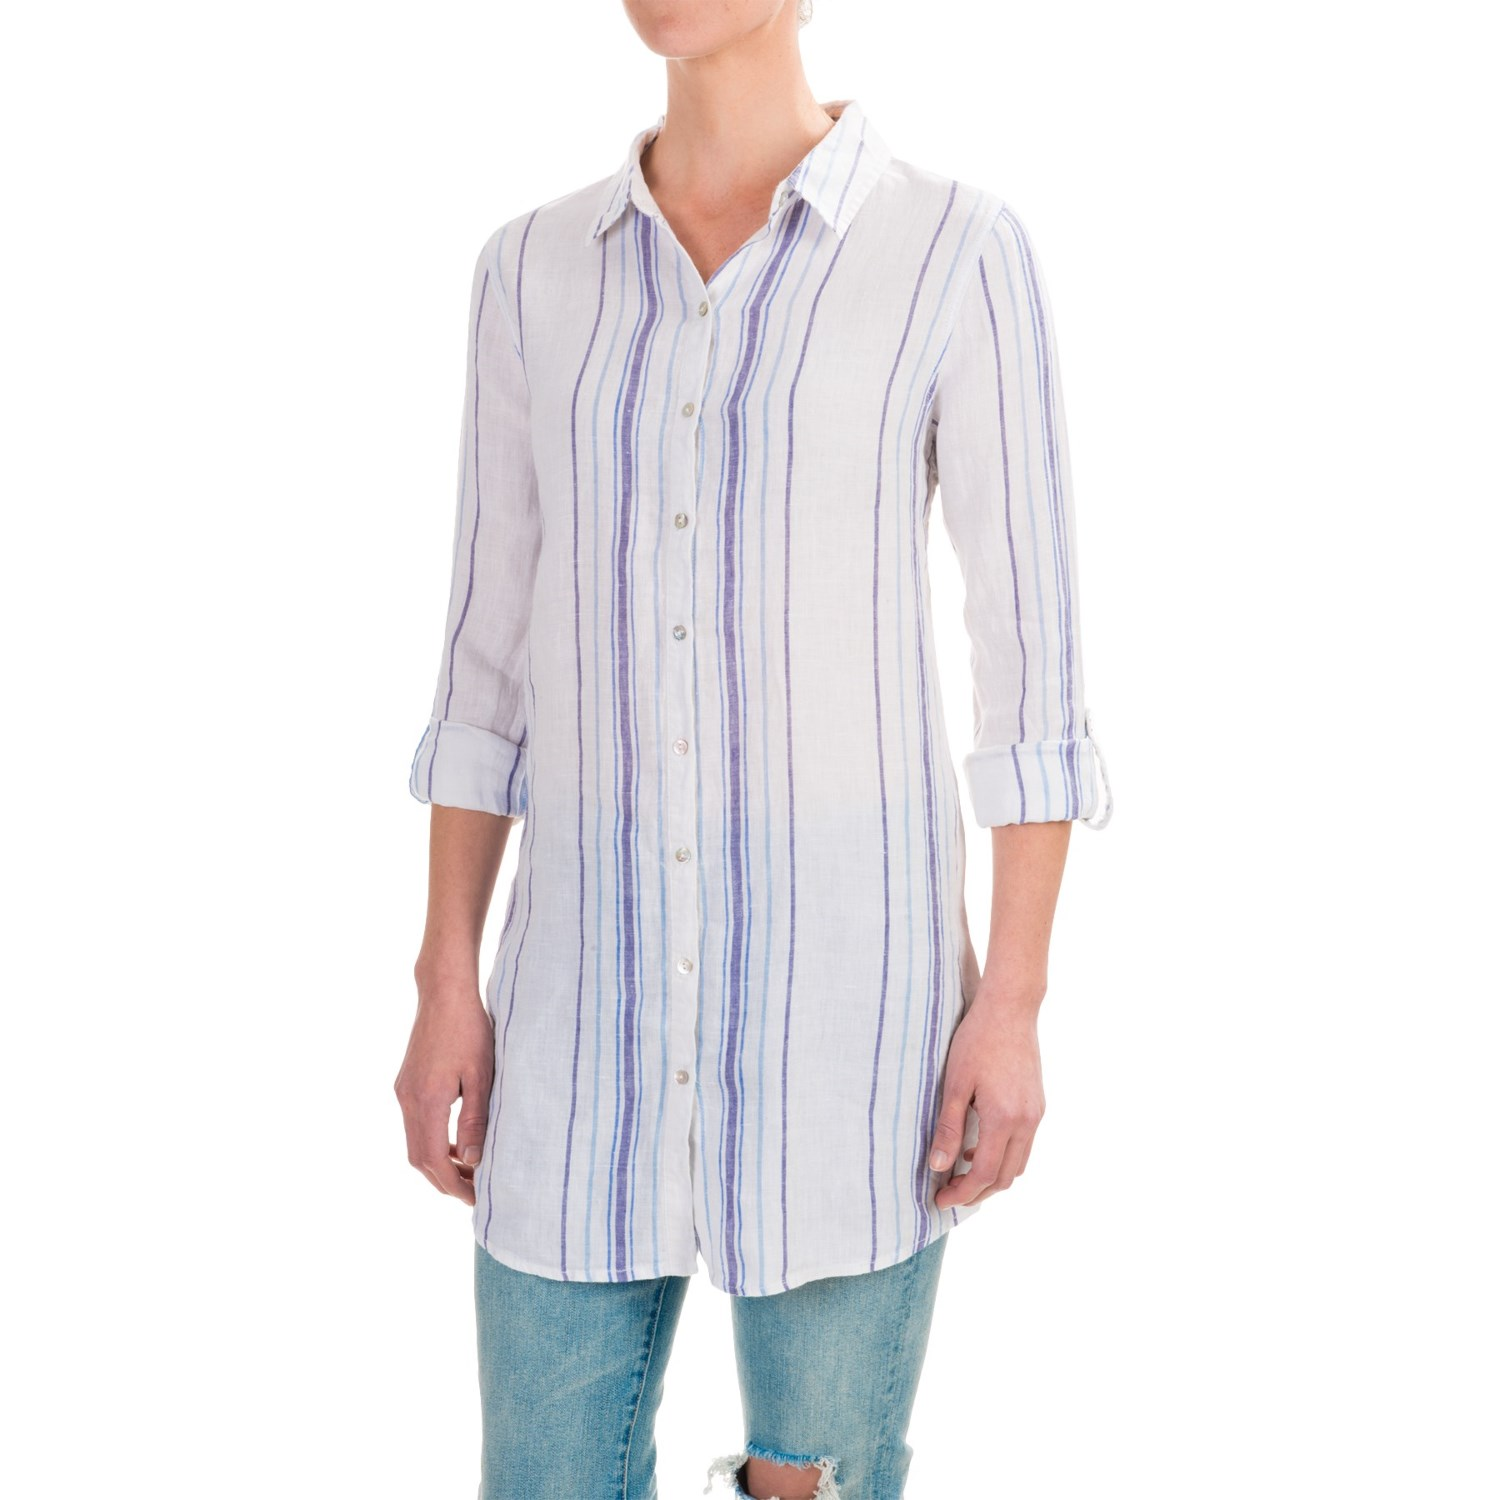 Shop for long white tunic online at Target. Free shipping on purchases over $35 and save 5% every day with your Target REDcard.